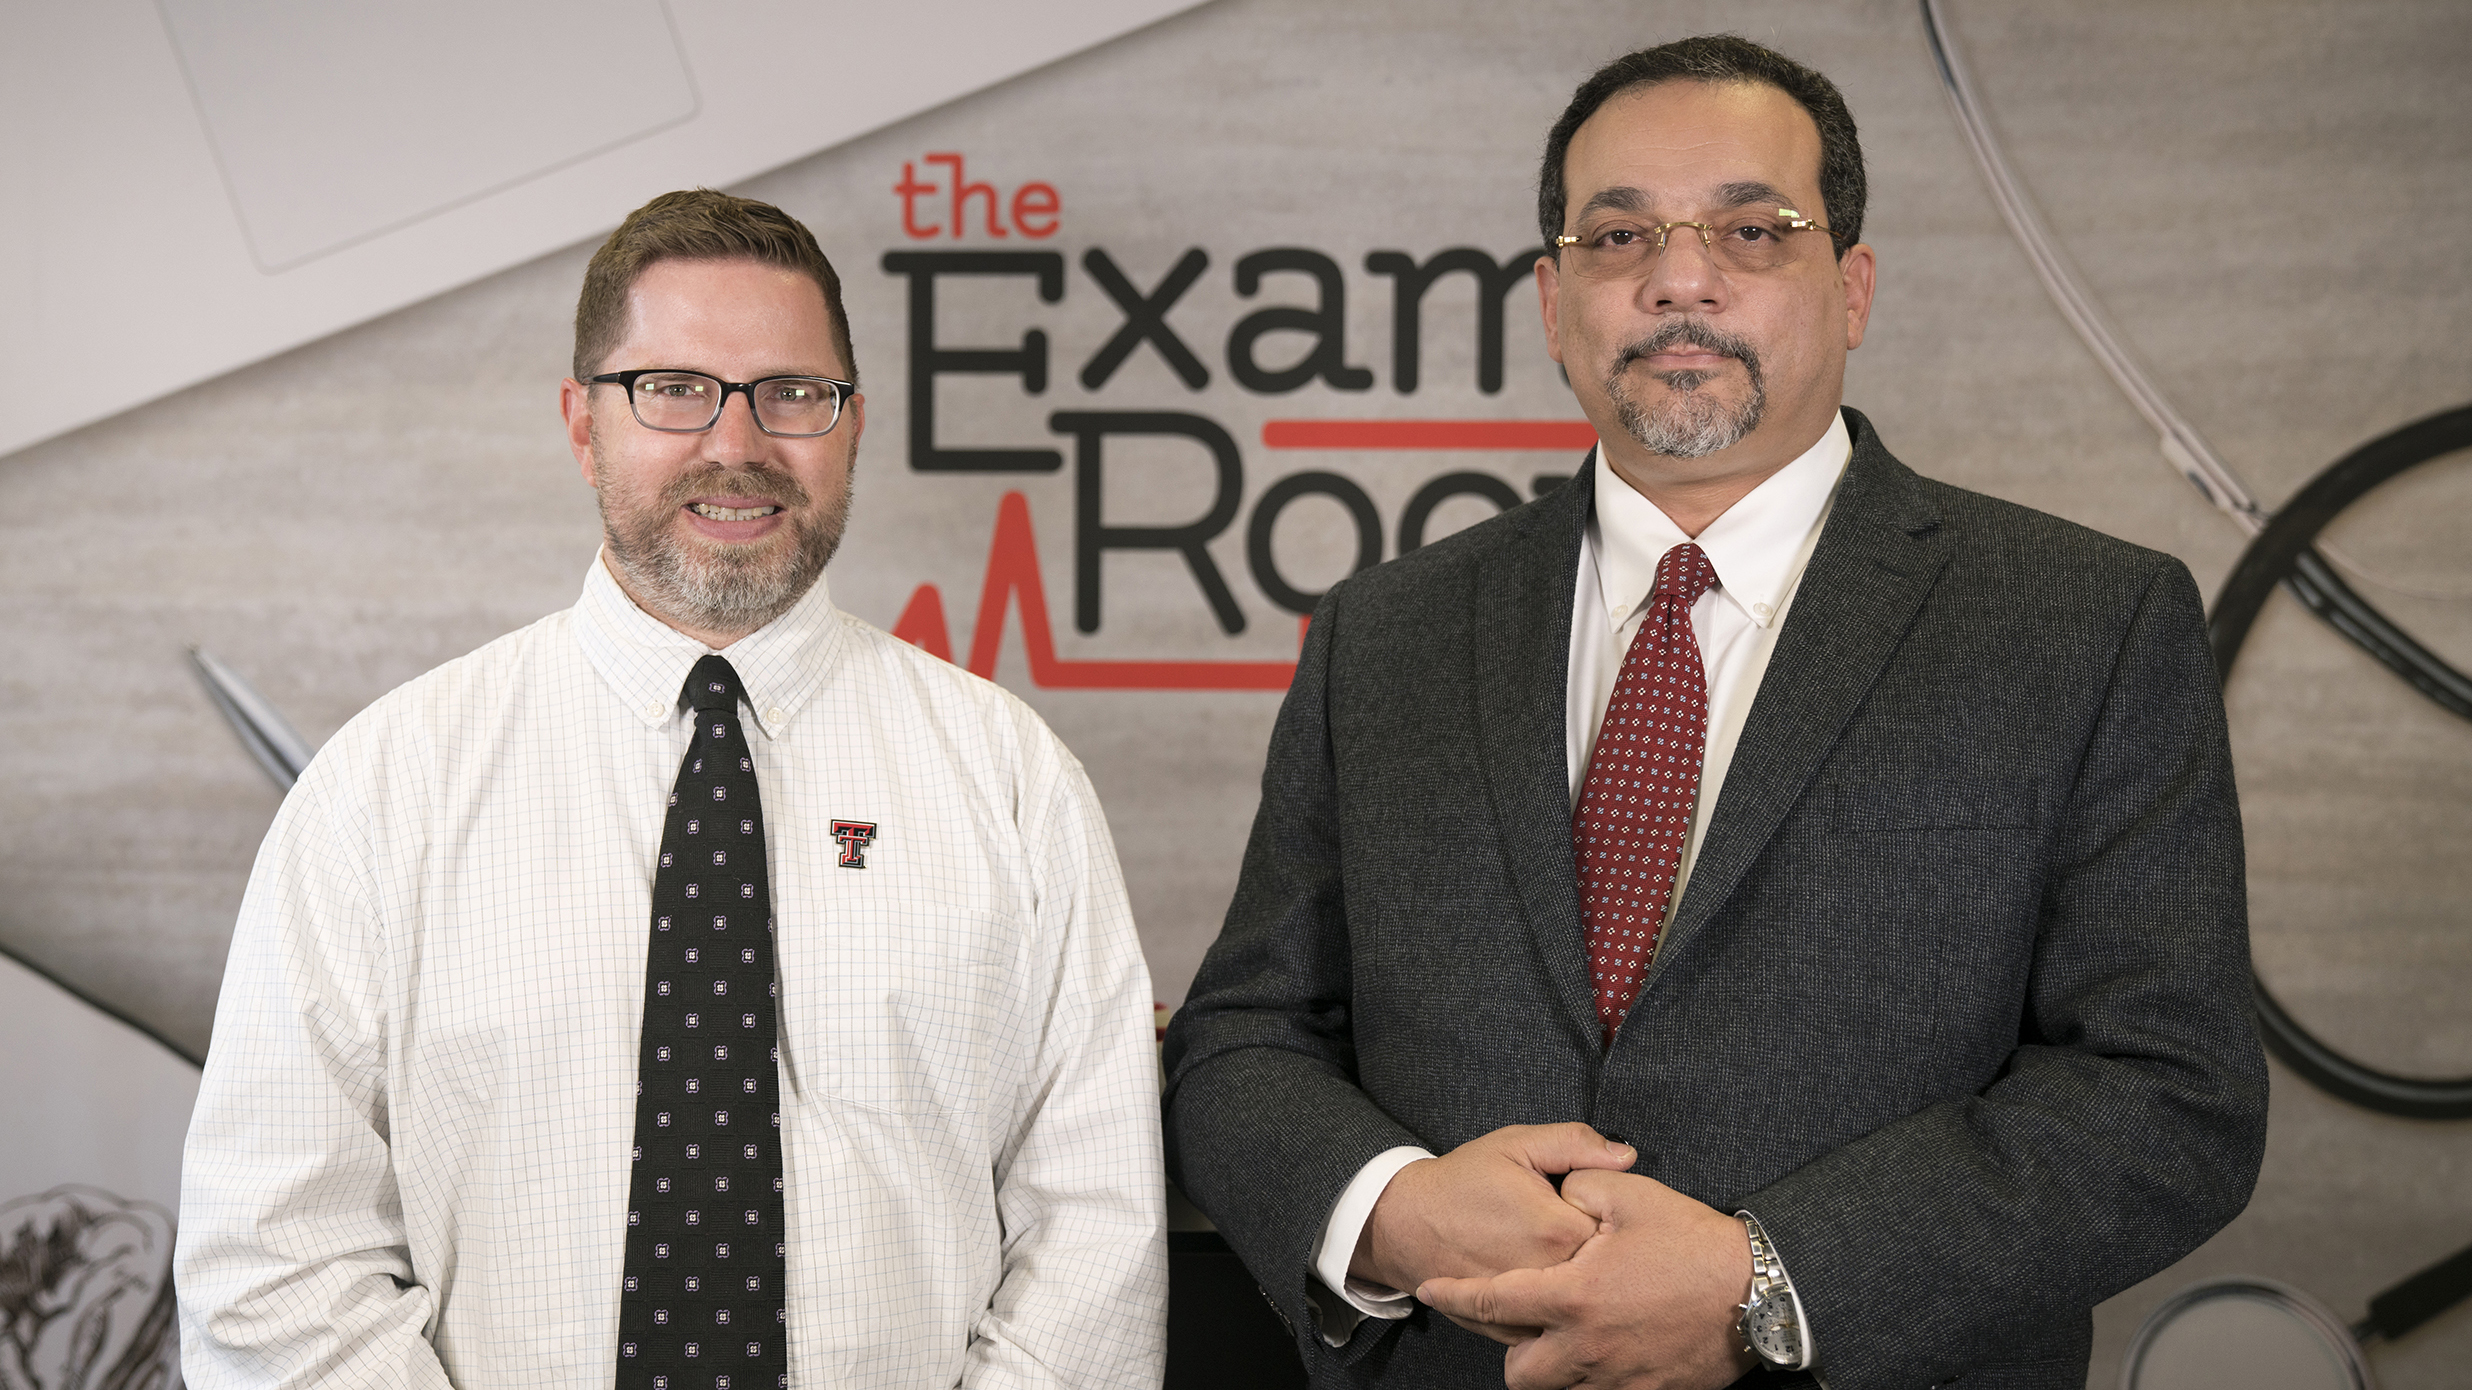 'The Exam Room' Focuses on Depression, Seasonal Affective Disorder